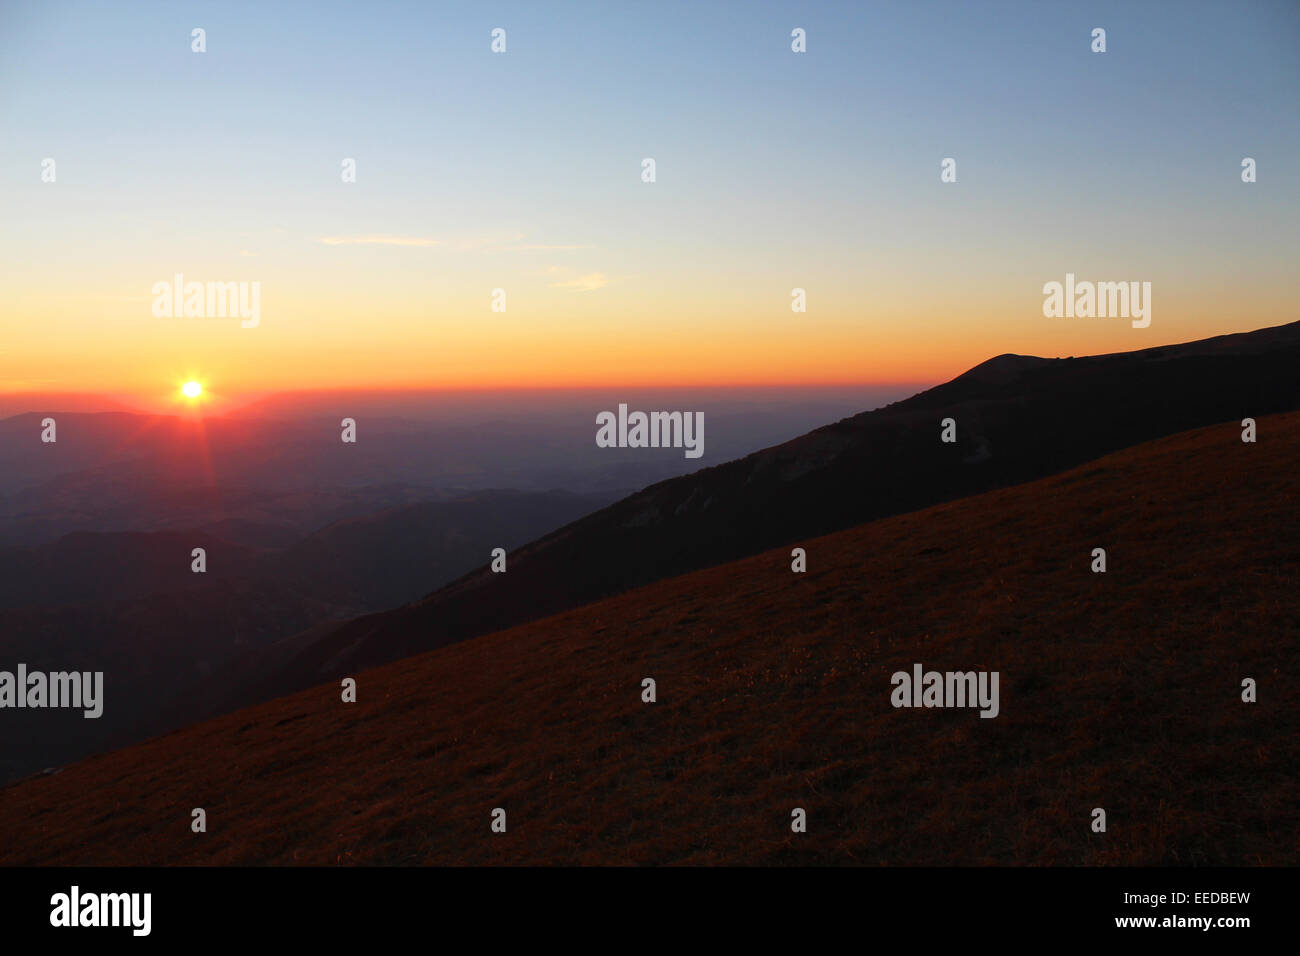 Zen-like for meditating in the mountain - Stock Image